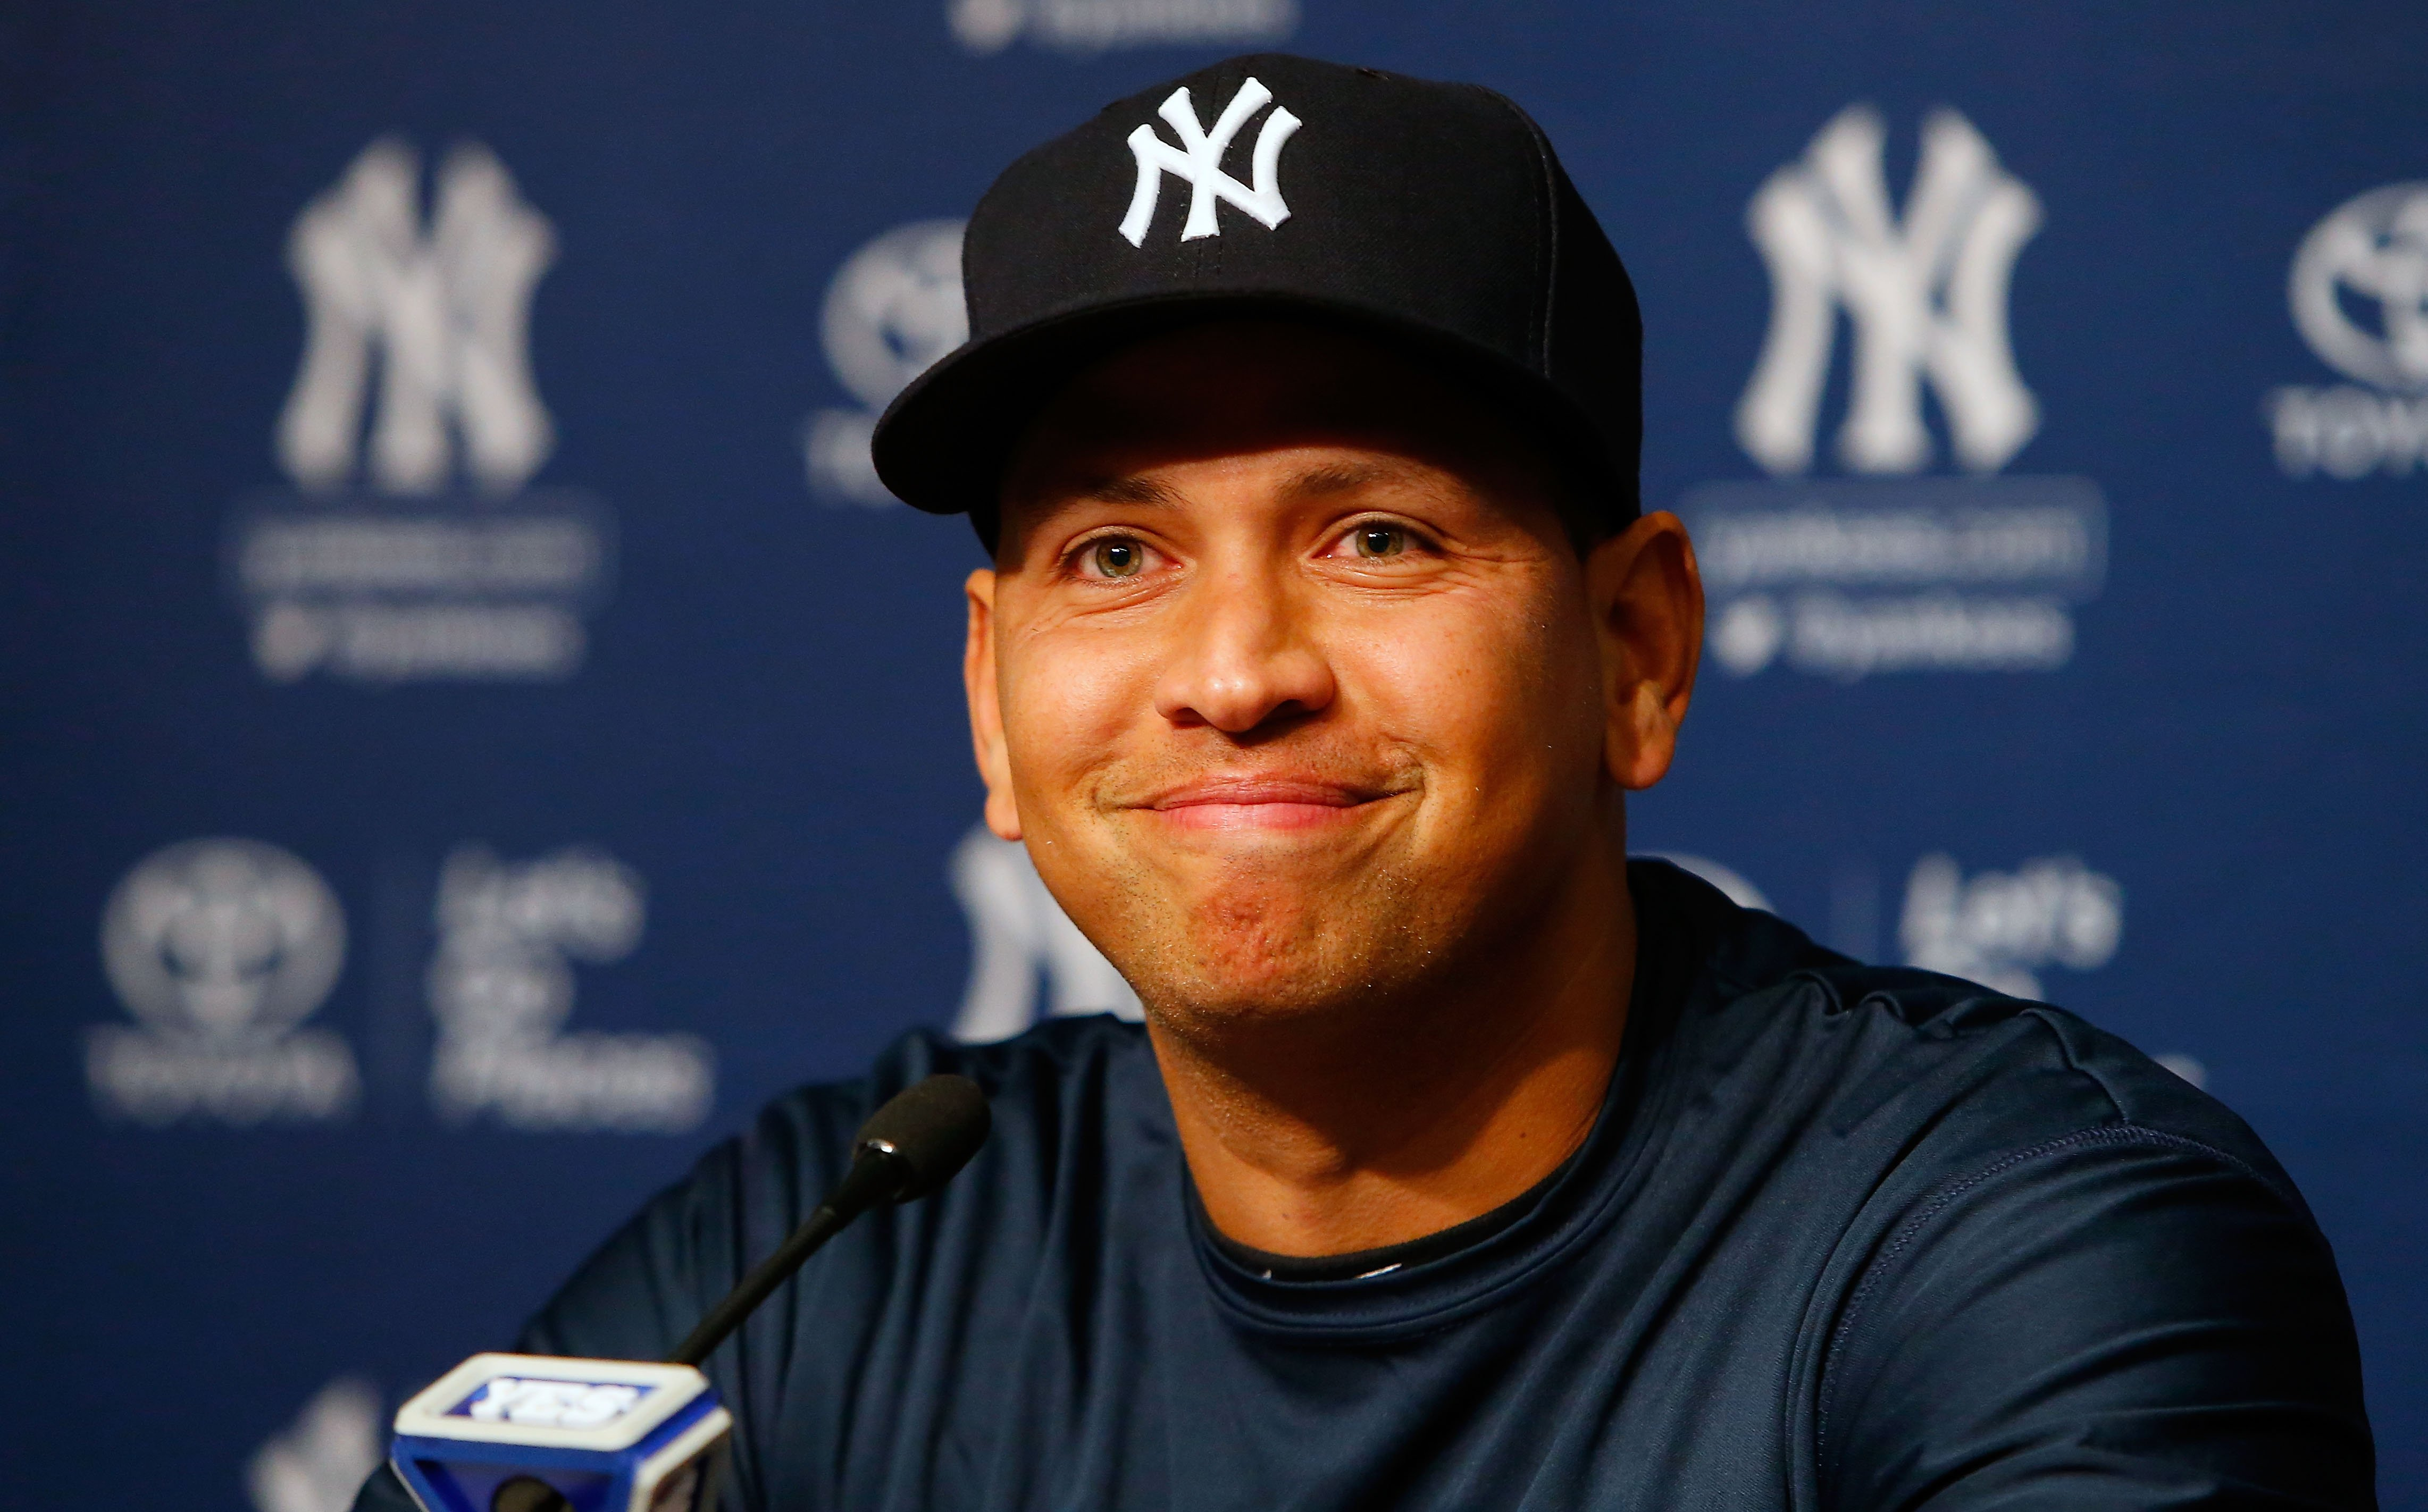 Alex Rodriguez on August 7, 2016 at Yankee Stadium, New York City | Source: Getty Images